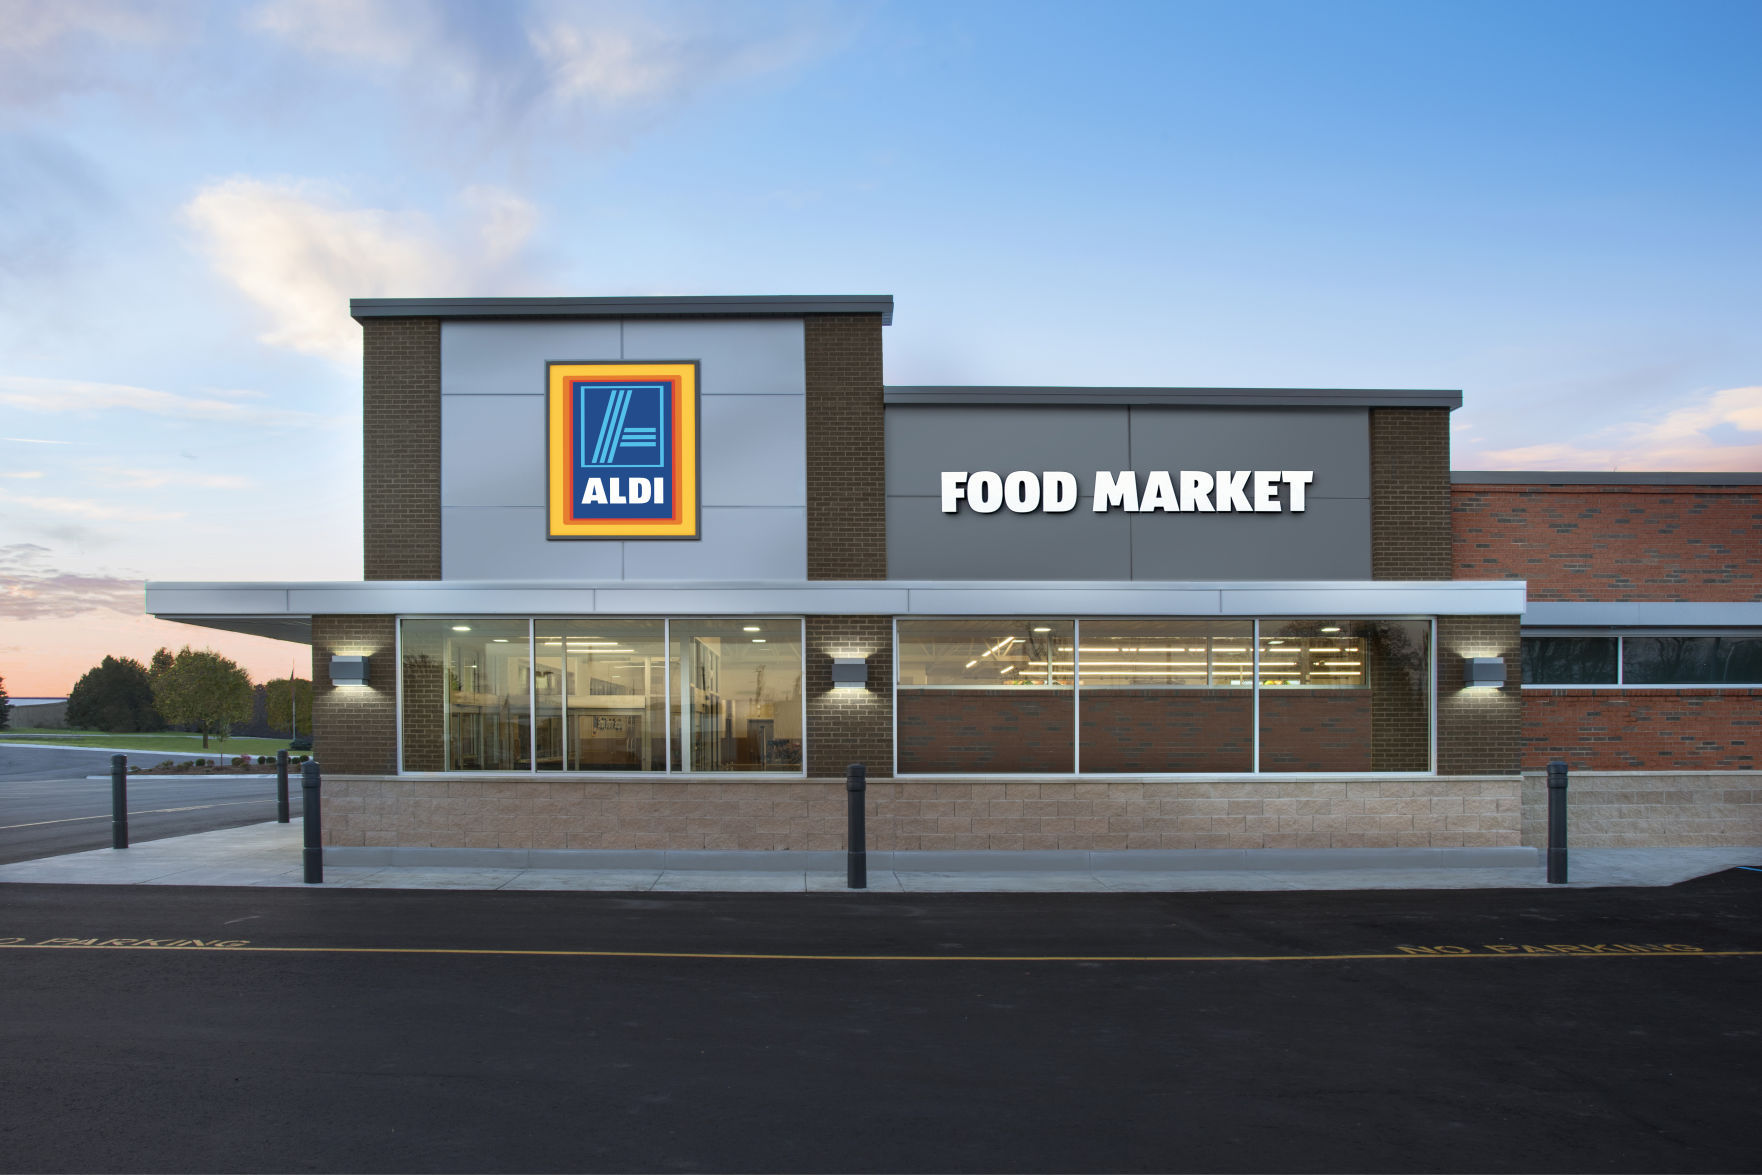 Aldi enters online grocery in U.S. with Instacart trial